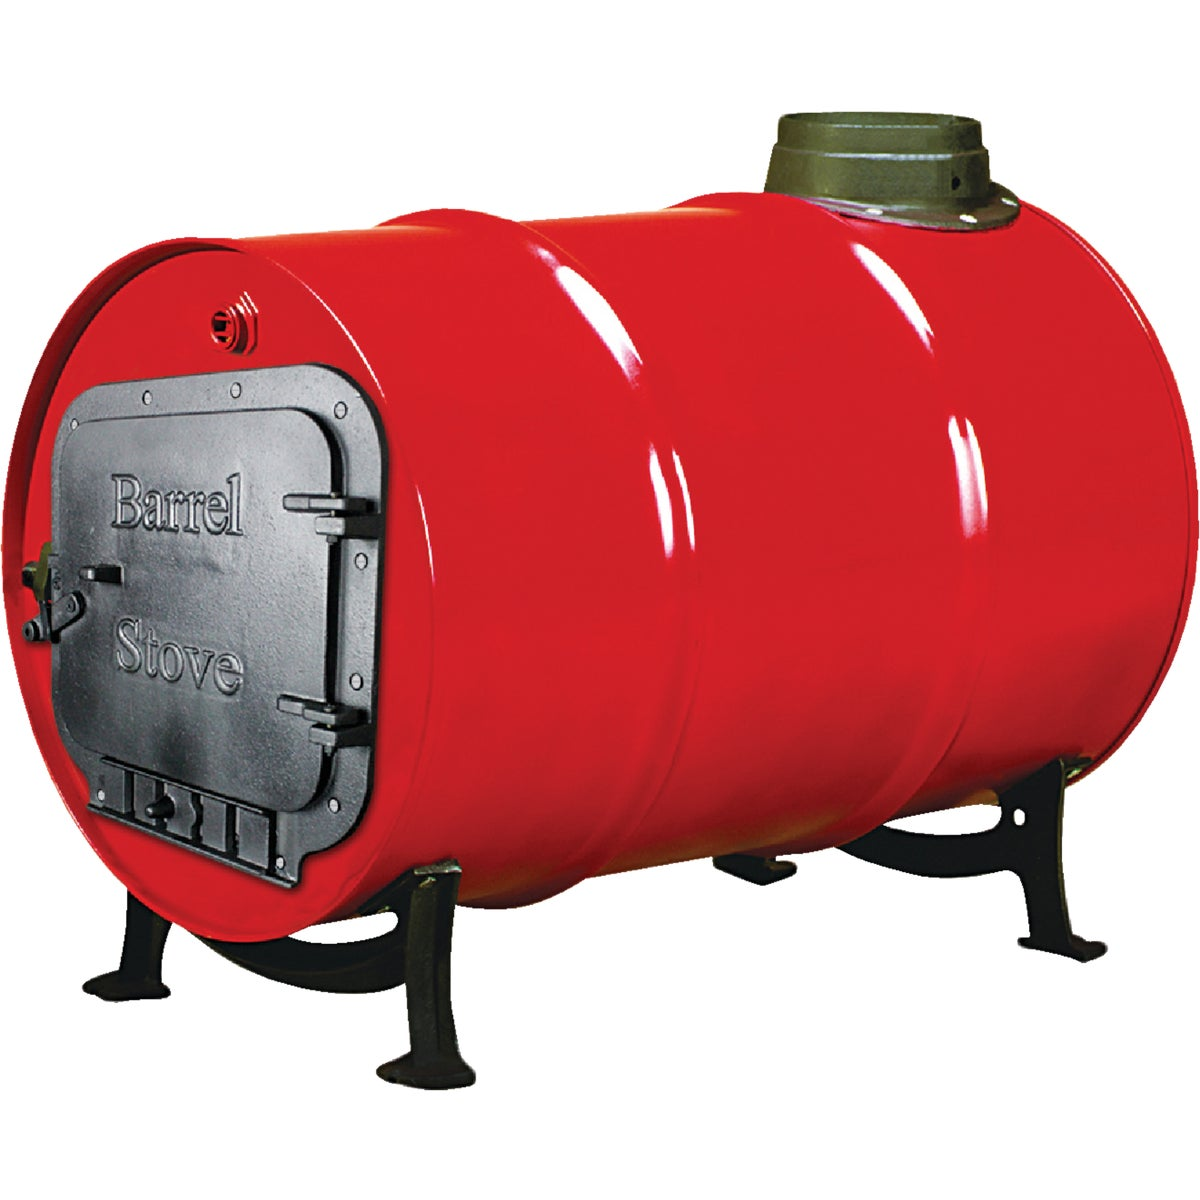 BARREL STOVE KIT - BK100E by Vogelzang Intl Co